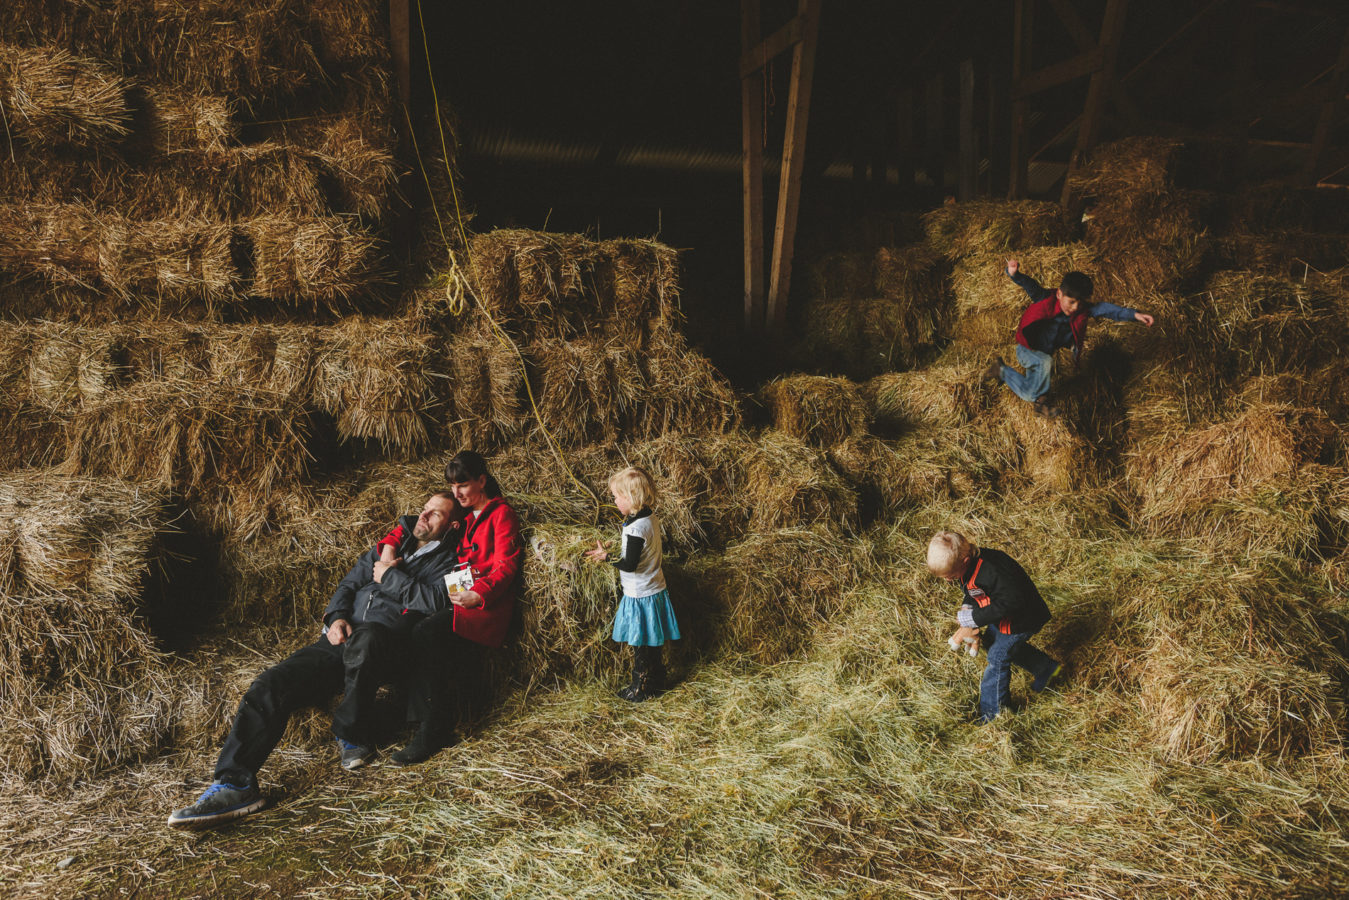 family amongst the hay bails in a bar with one kid jumping in the air